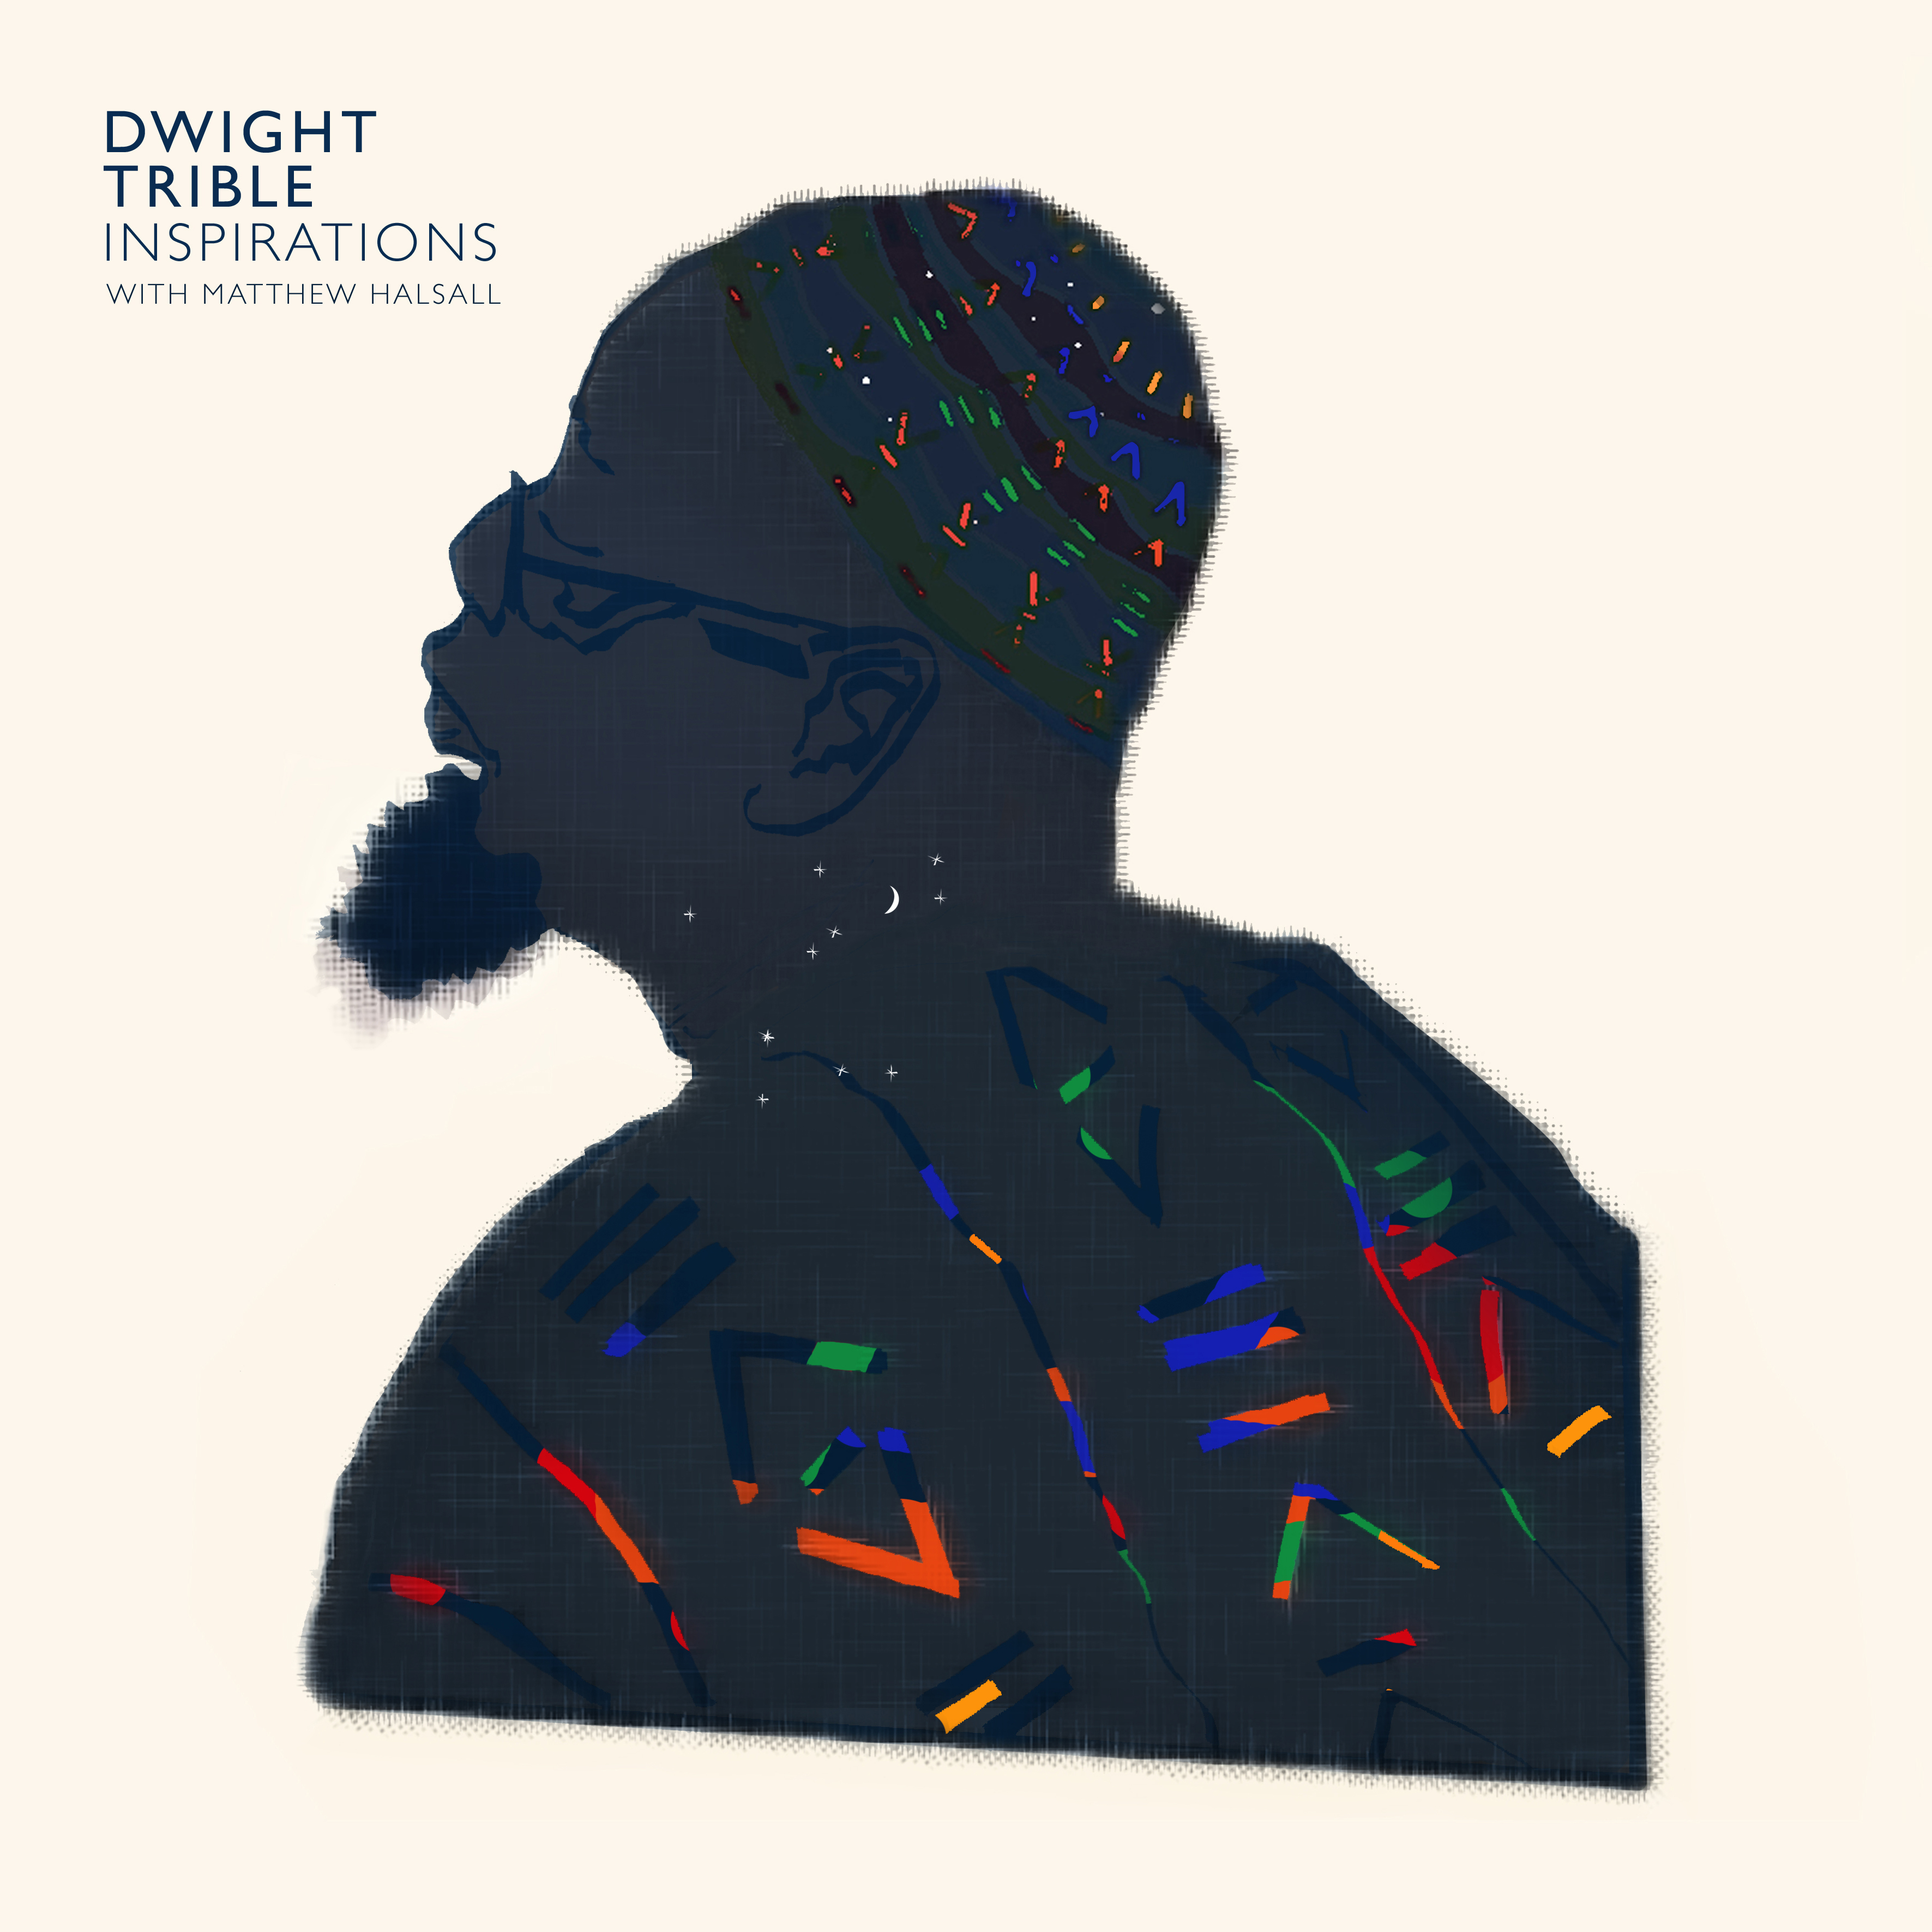 Out now Dwight Trible's Inspirations album featuring Matthew Halsall